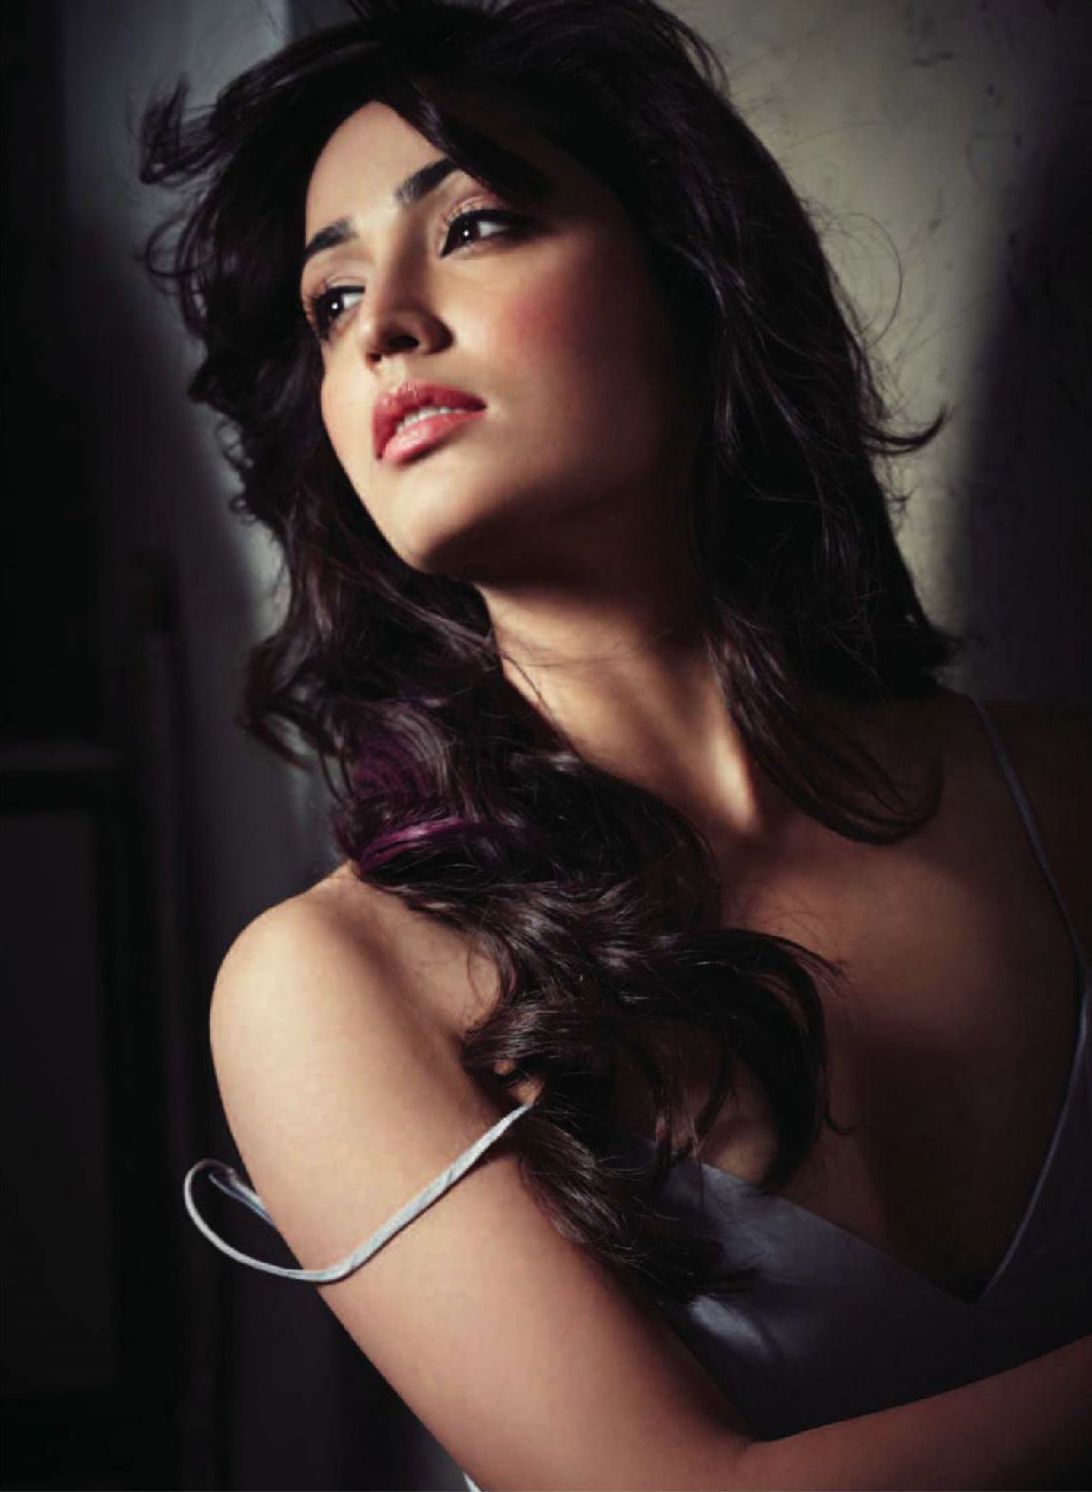 sultry seductress: yami gautam turns up the heat for photoshoot